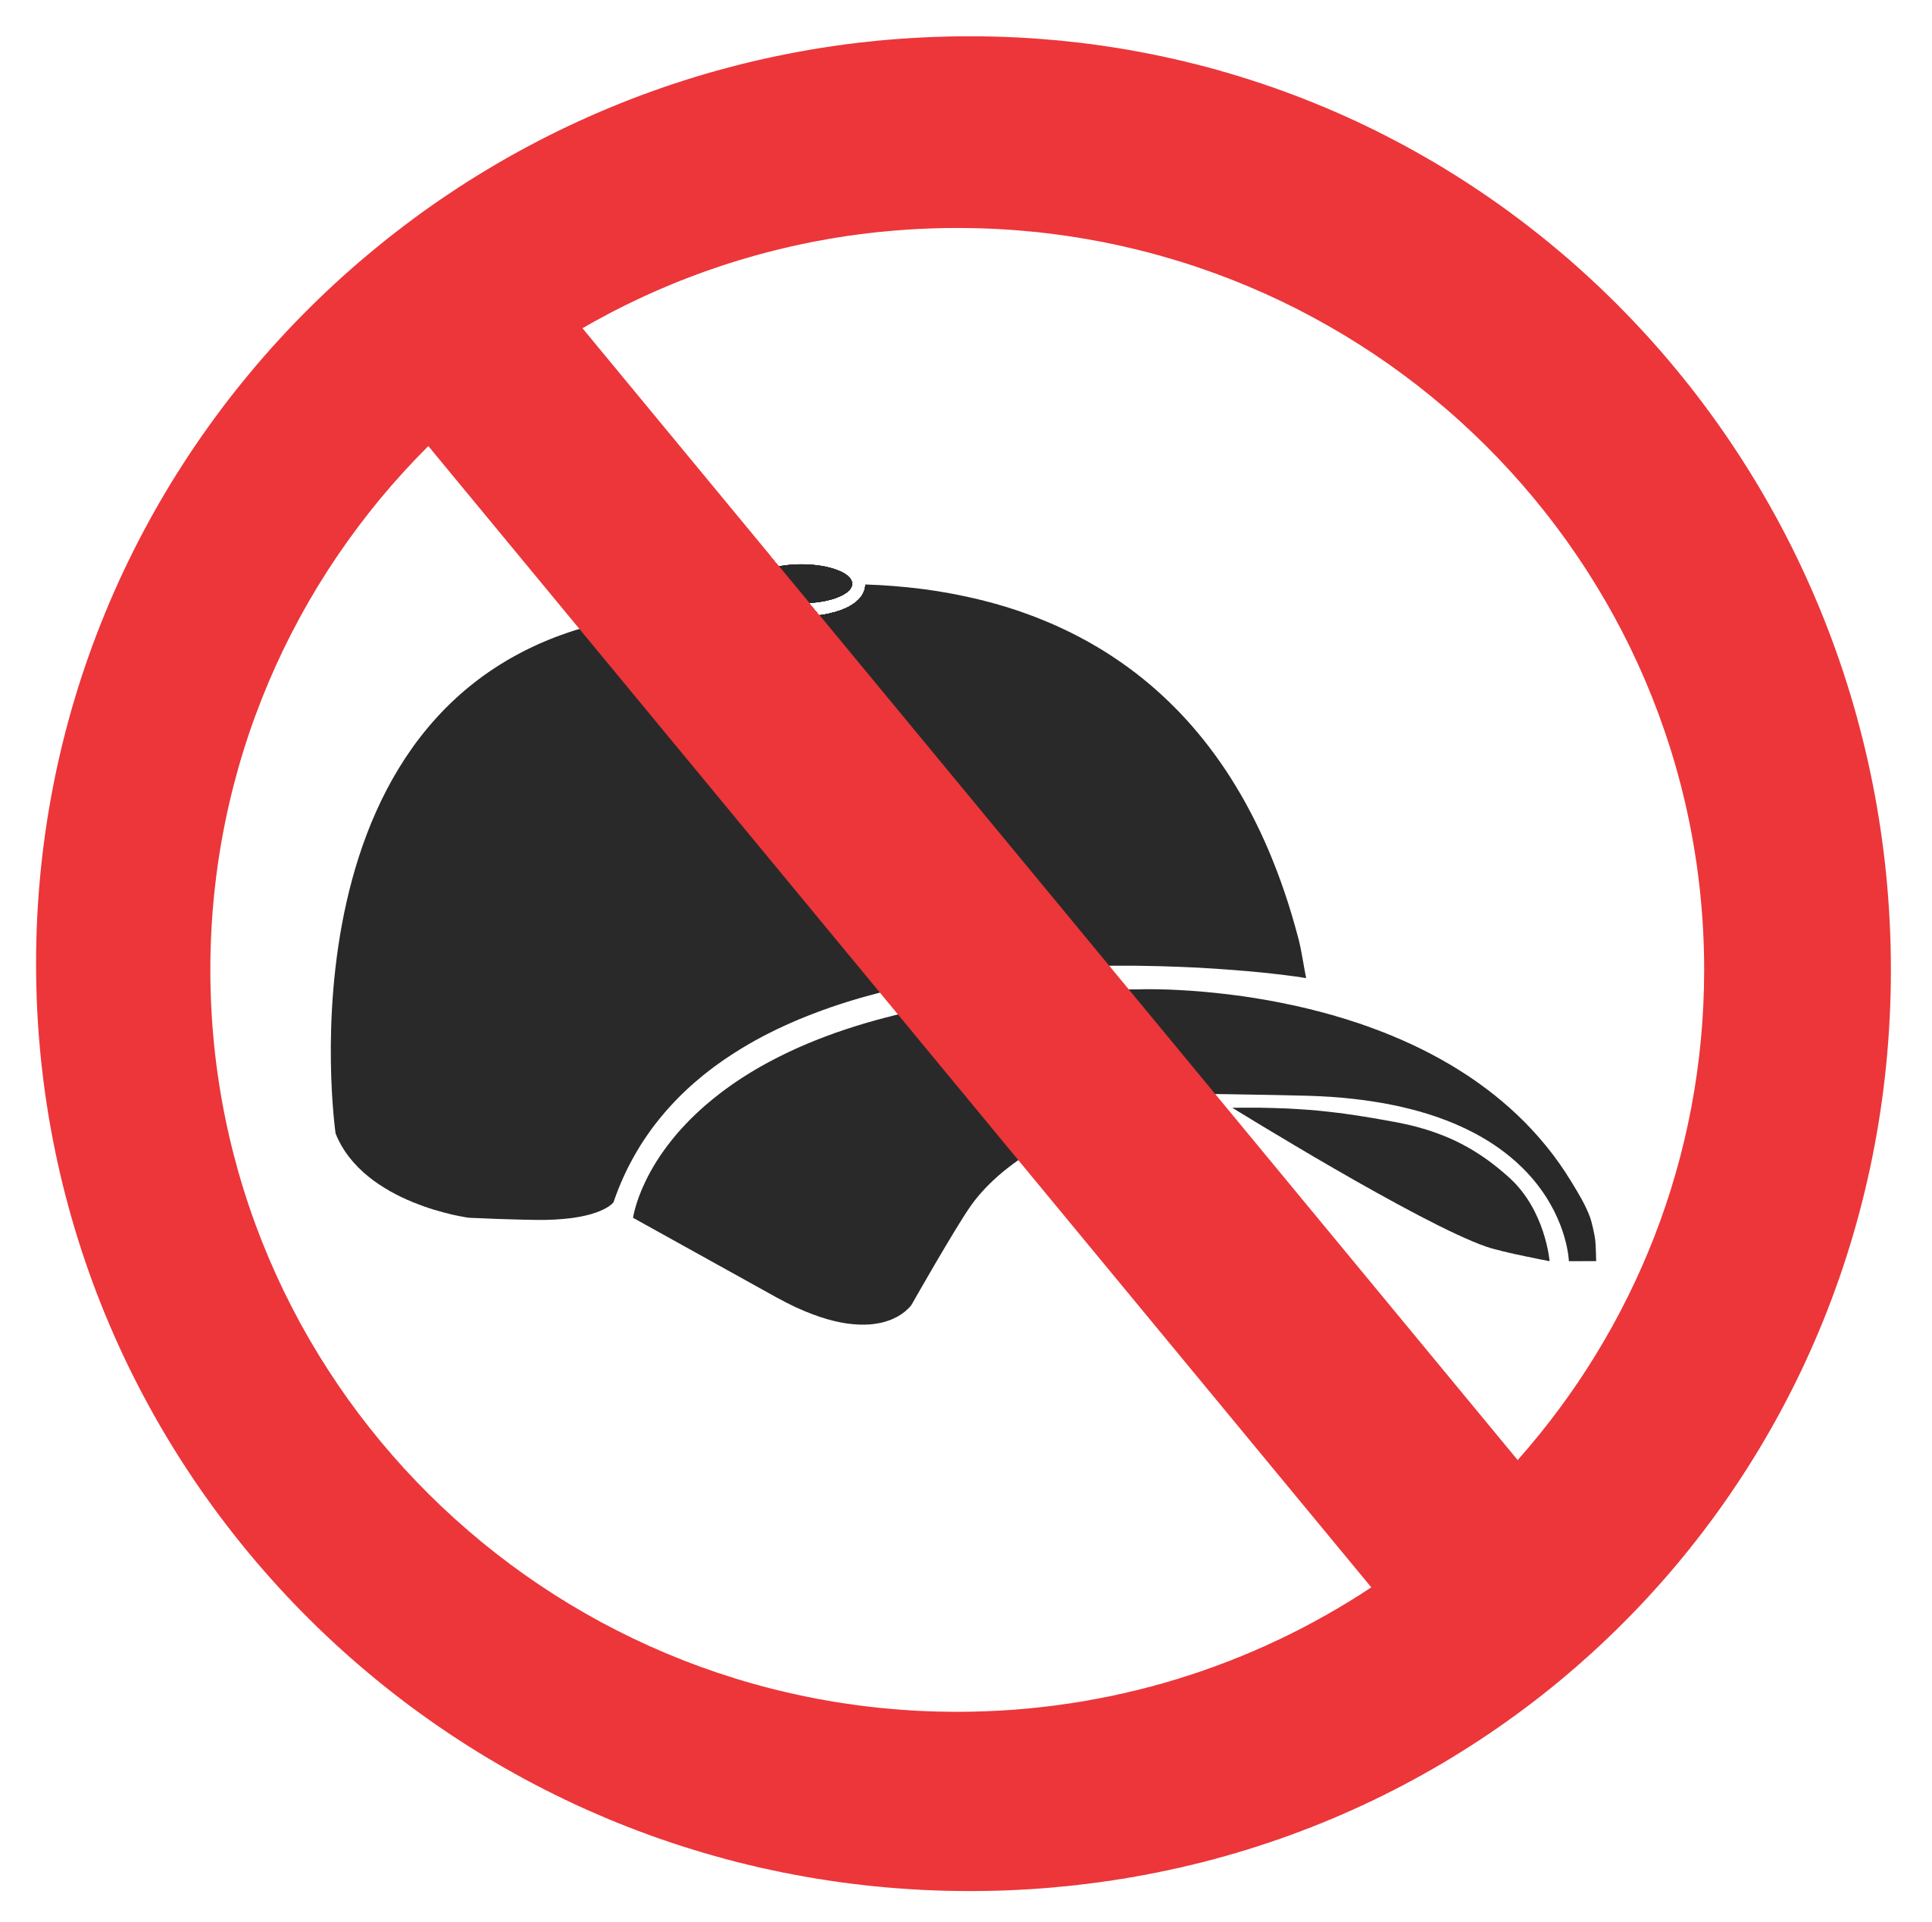 no hats vector by mrmephobia on deviantart vector icon mail flat vector icon mail flat